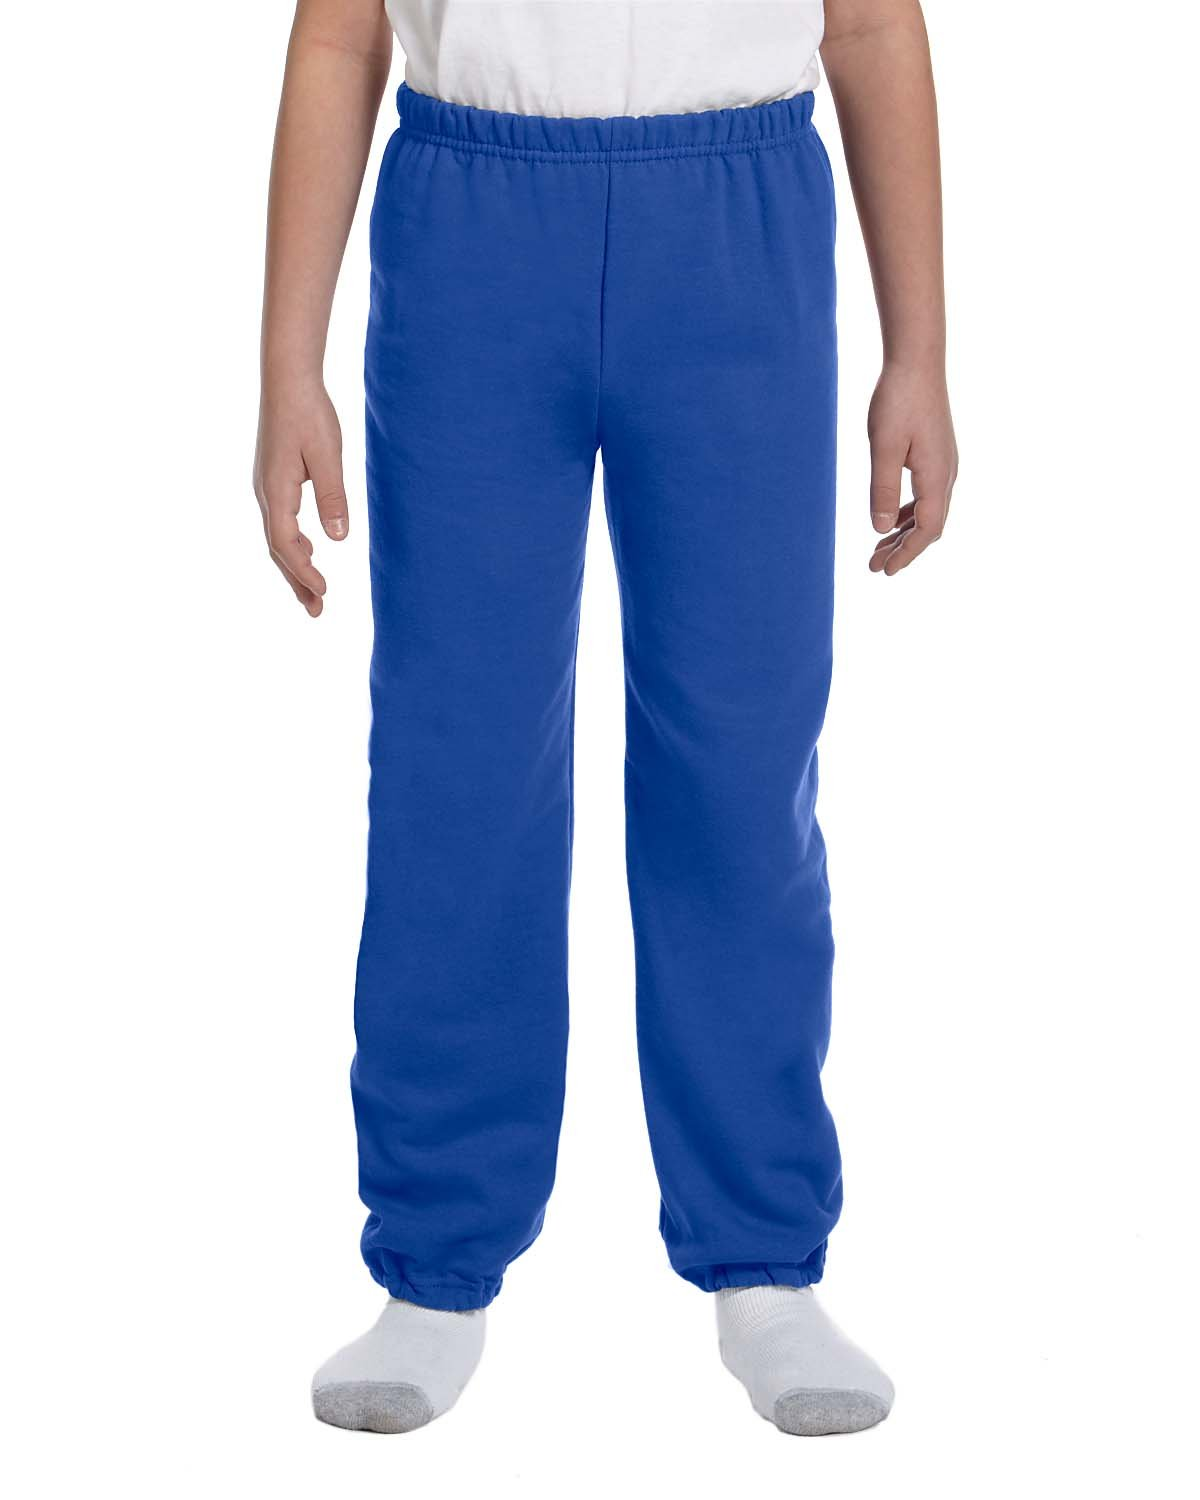 Gildan Boys 7.75 oz. Heavy Blend? 50/50 Sweatpants (G182B) -ROYAL -L-12PK